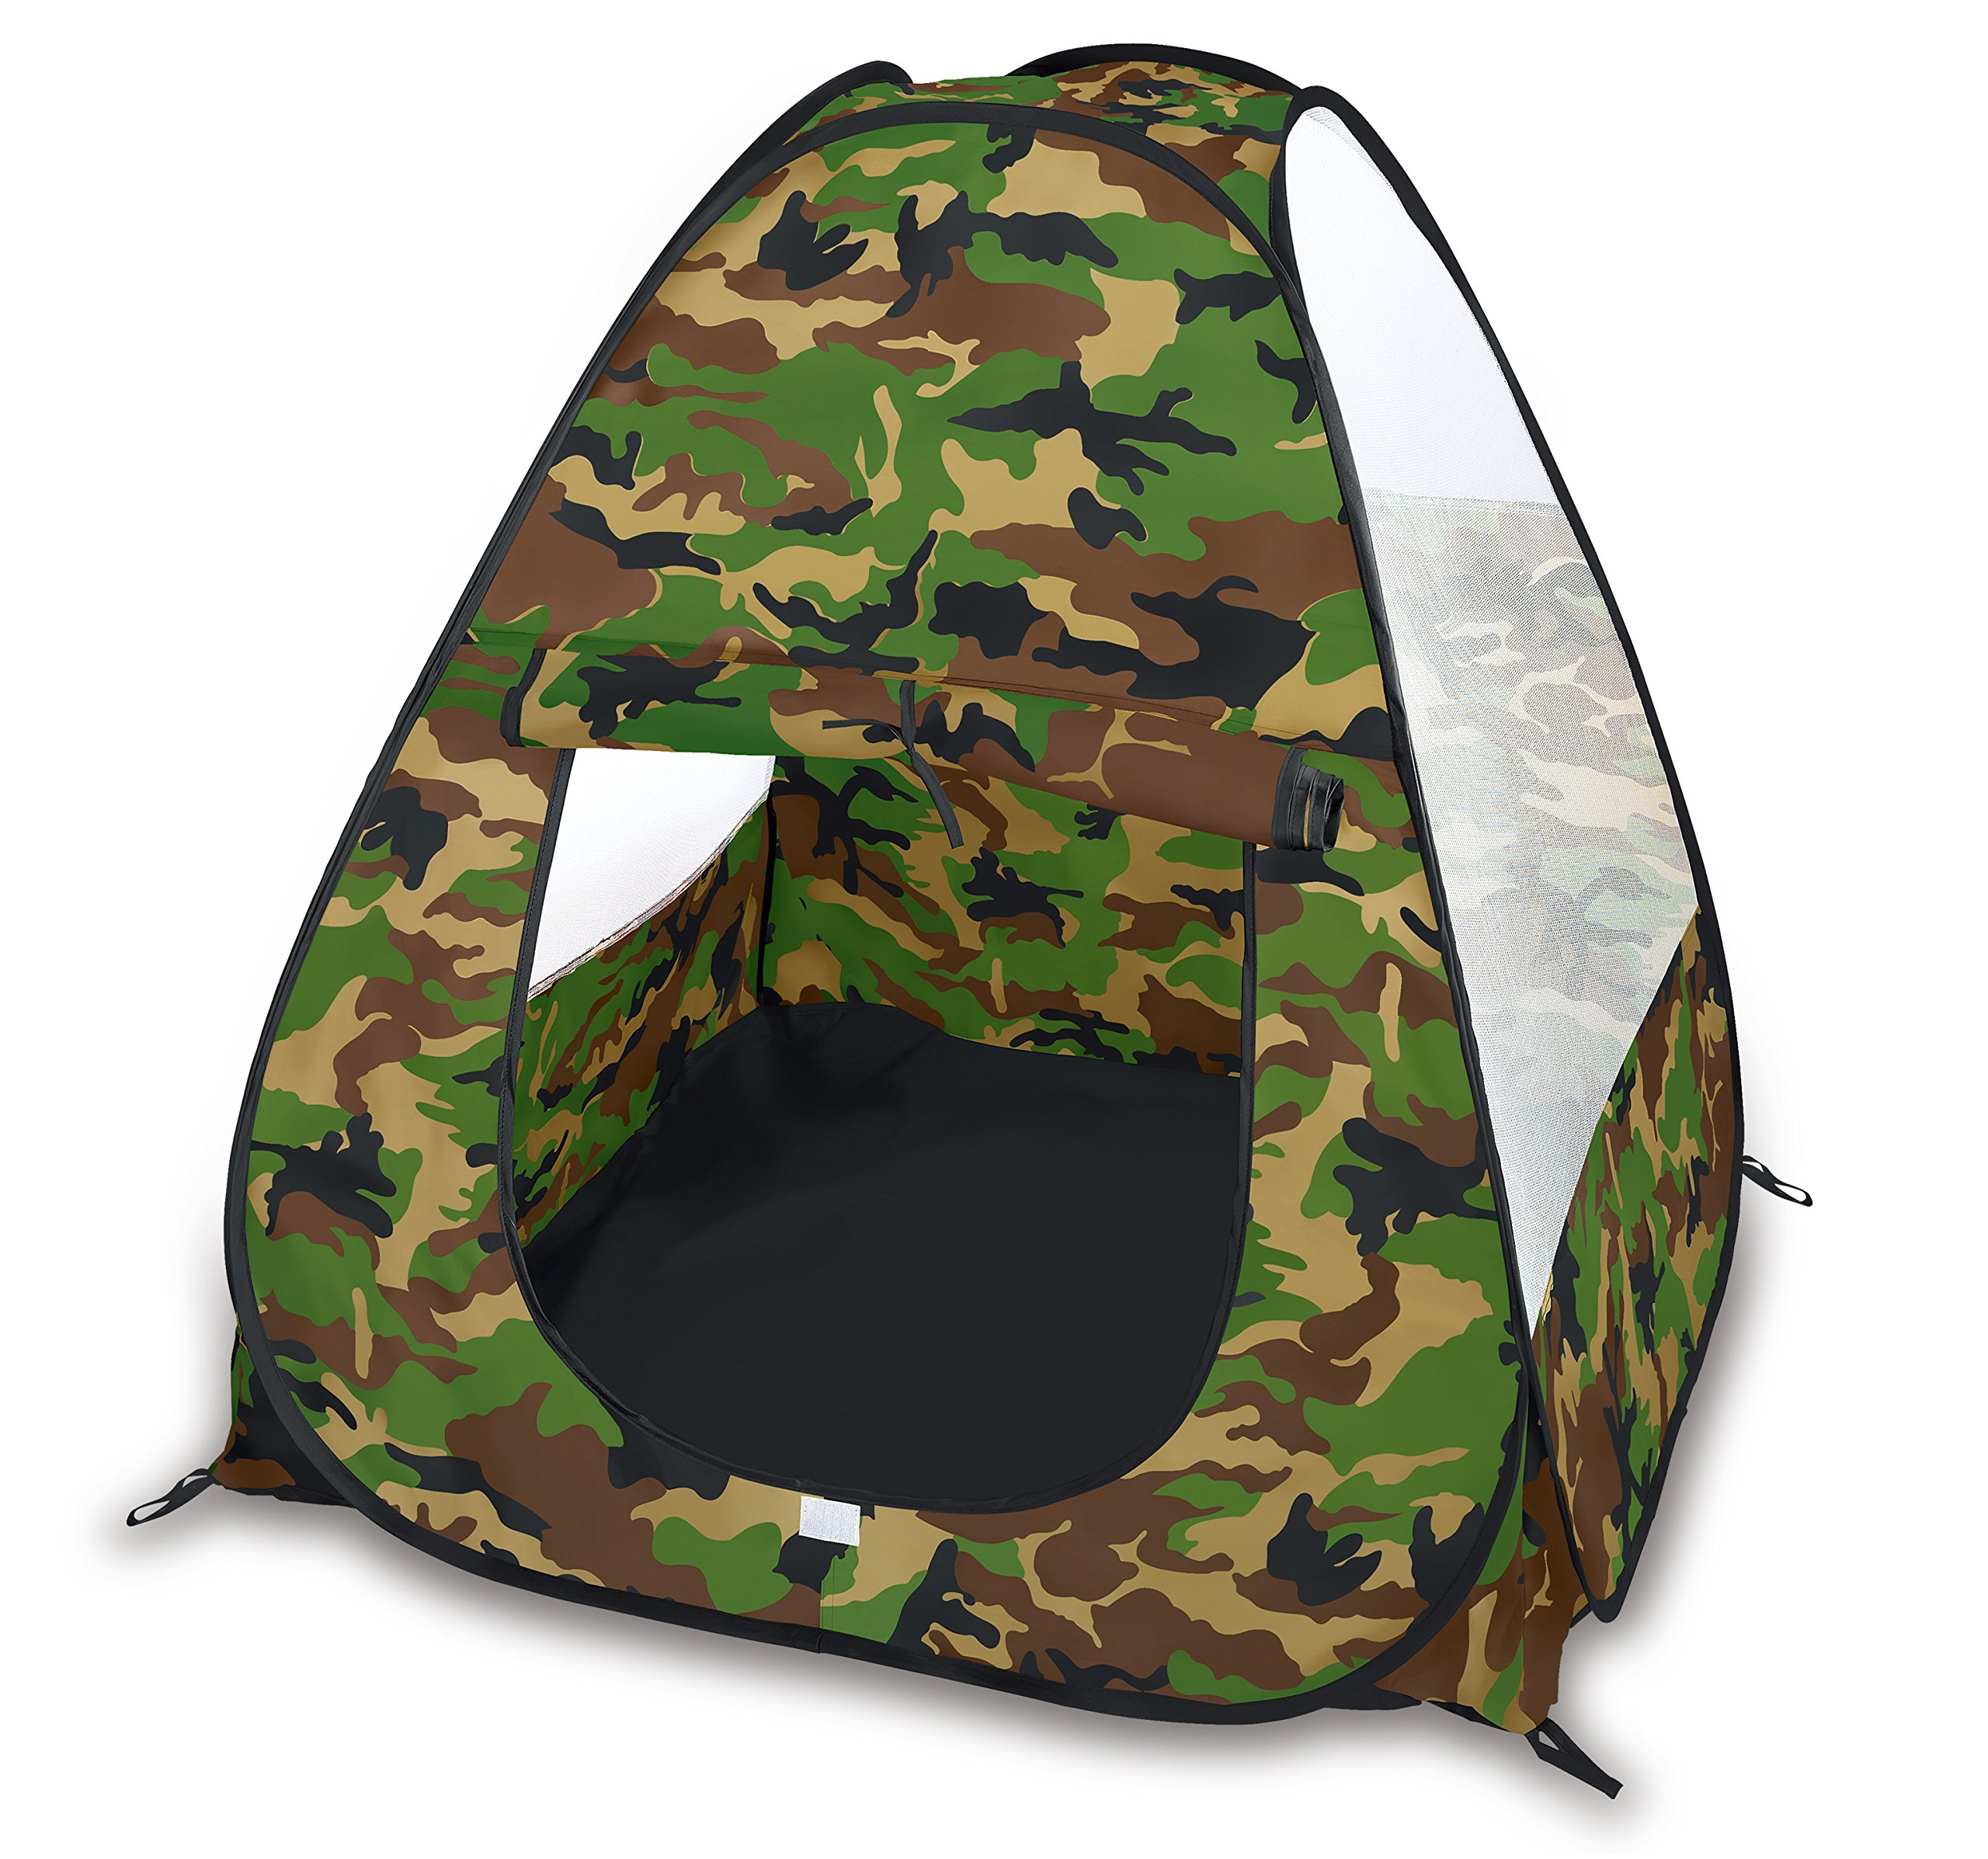 Camouflage Military Pop Up Play Tent - Collapsible Indoor/Outdoor Army Playhouse for Kids